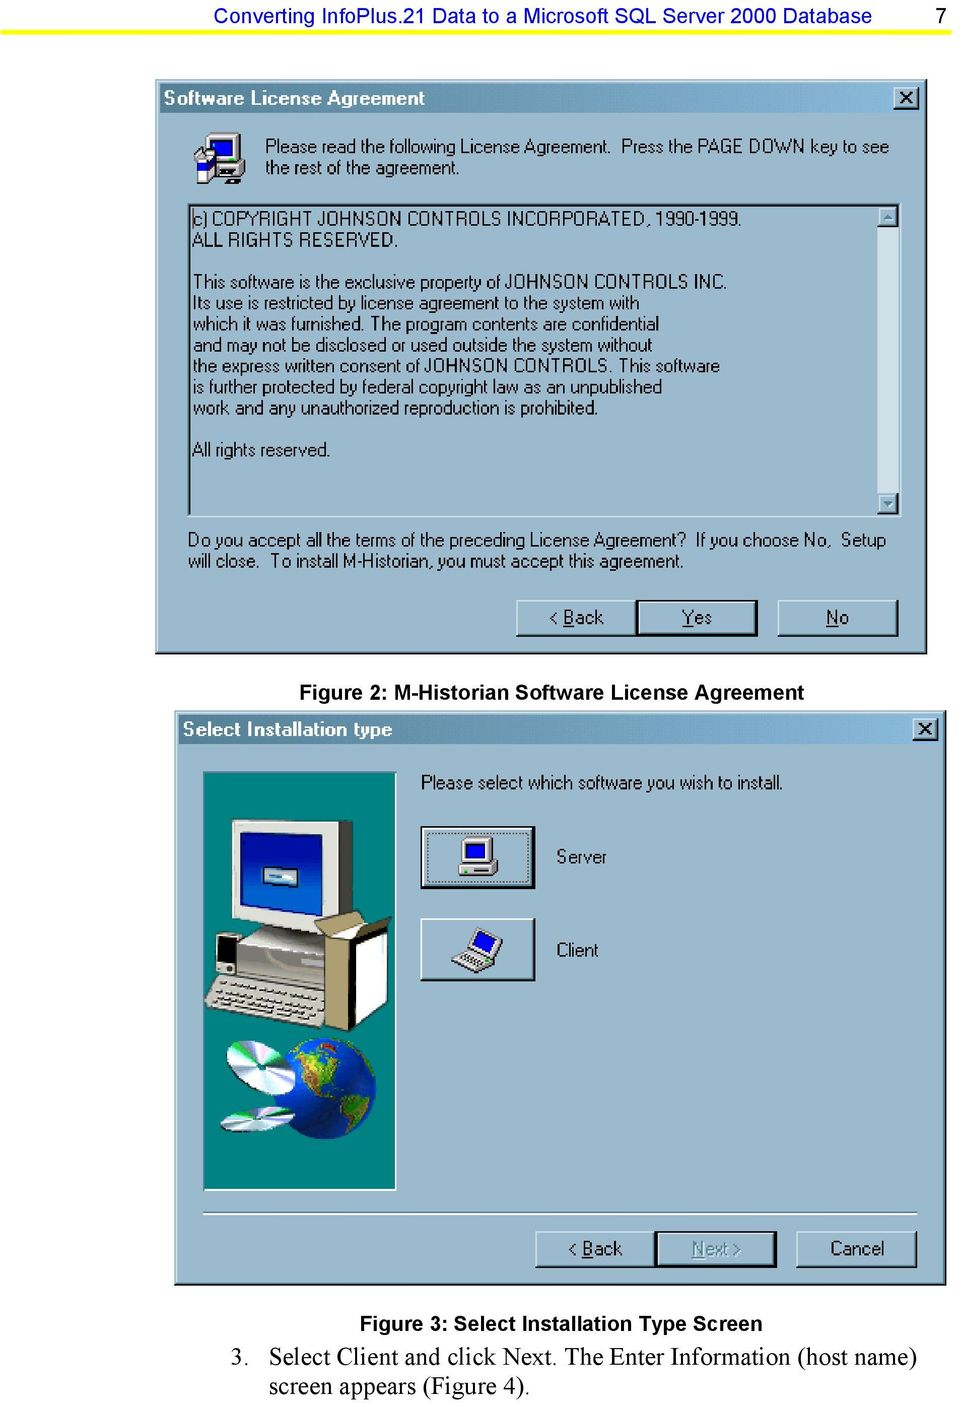 M-Historian Software License Agreement Figure 3: Select